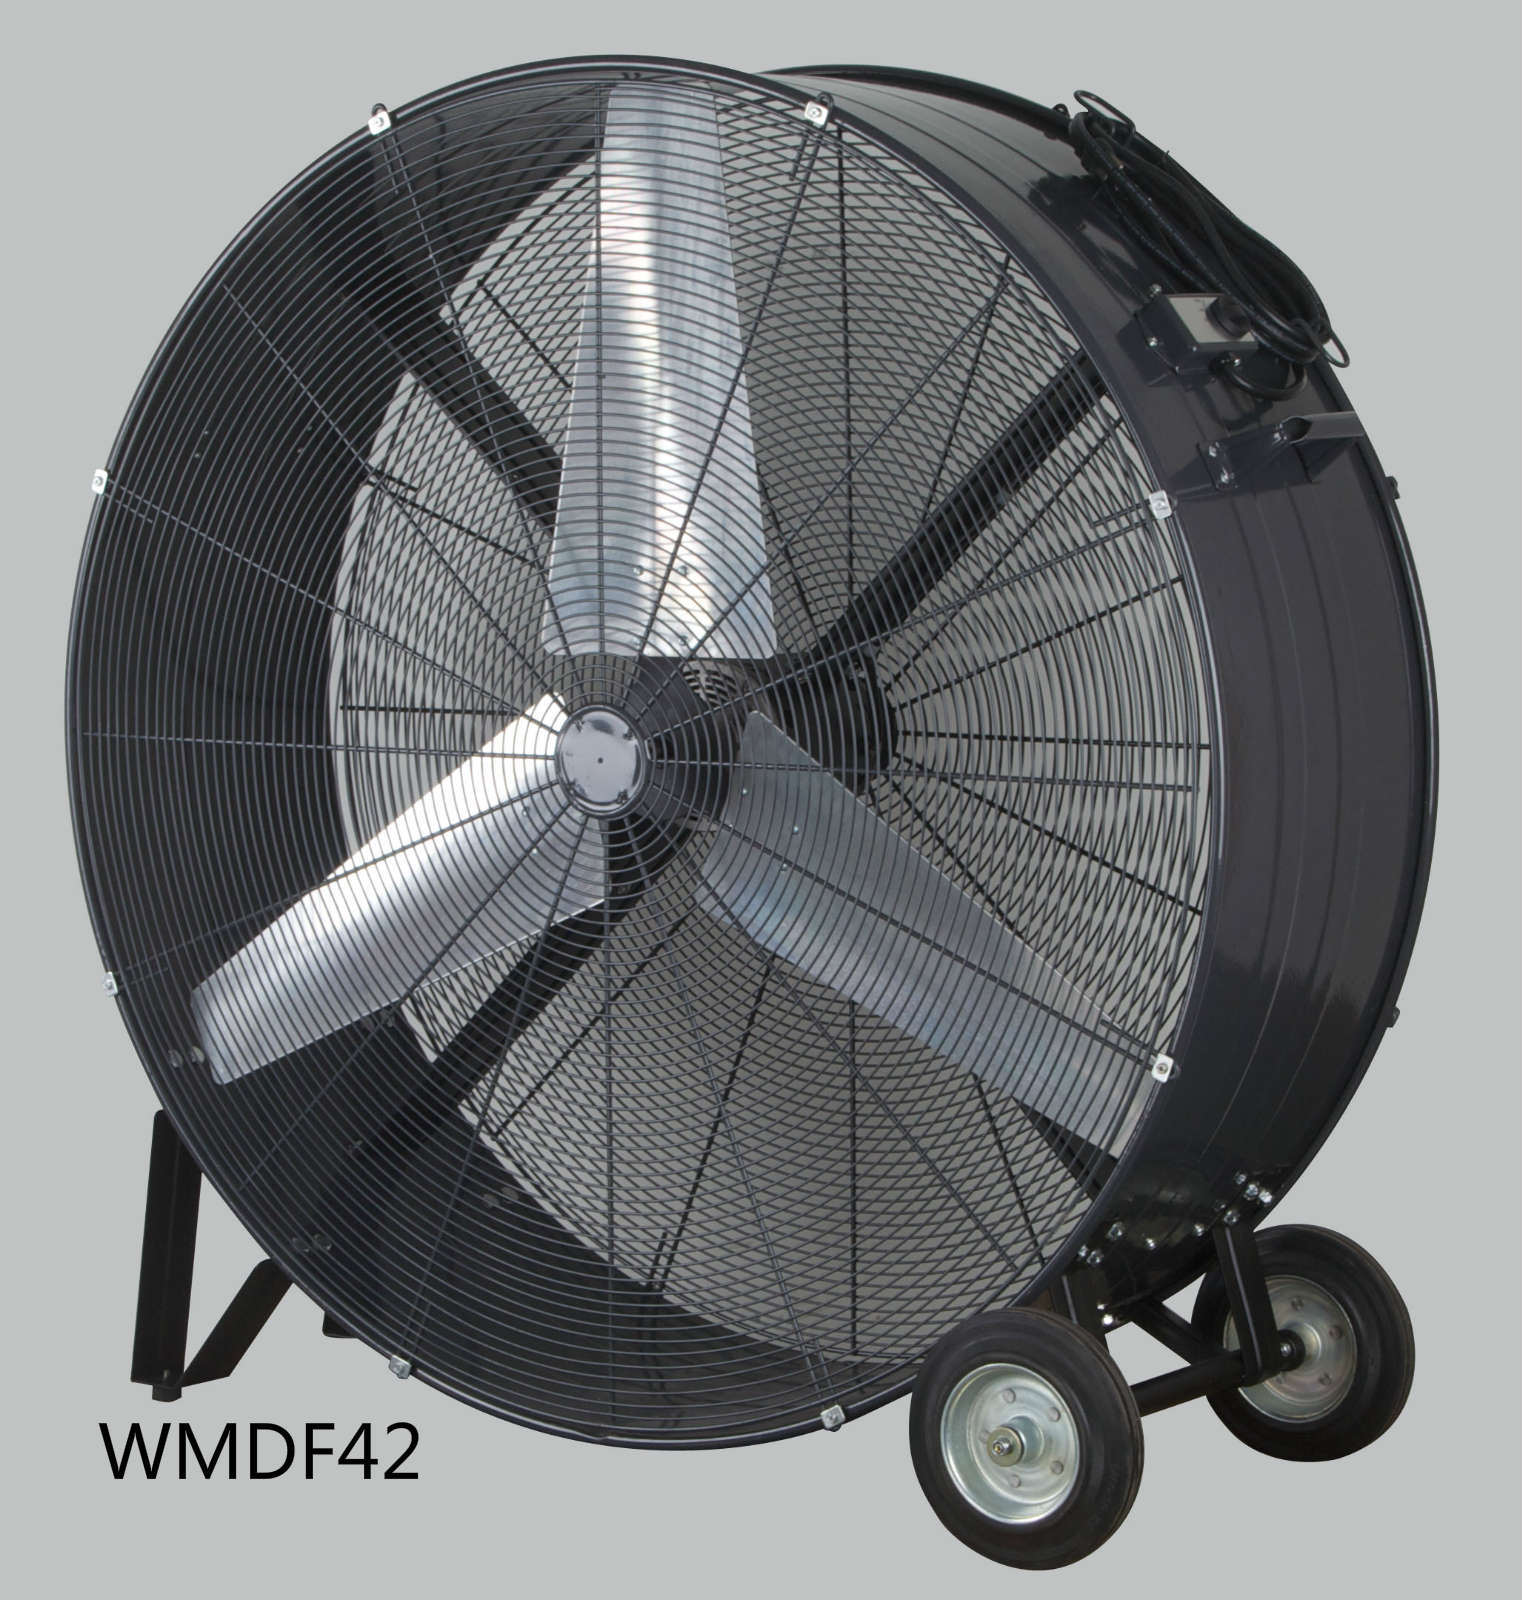 42 Inch Heavy-Duty Wheels and Carrying Handles Drum Fan High Volume Fan High Velocity Fan for Industrial & Commercial Use